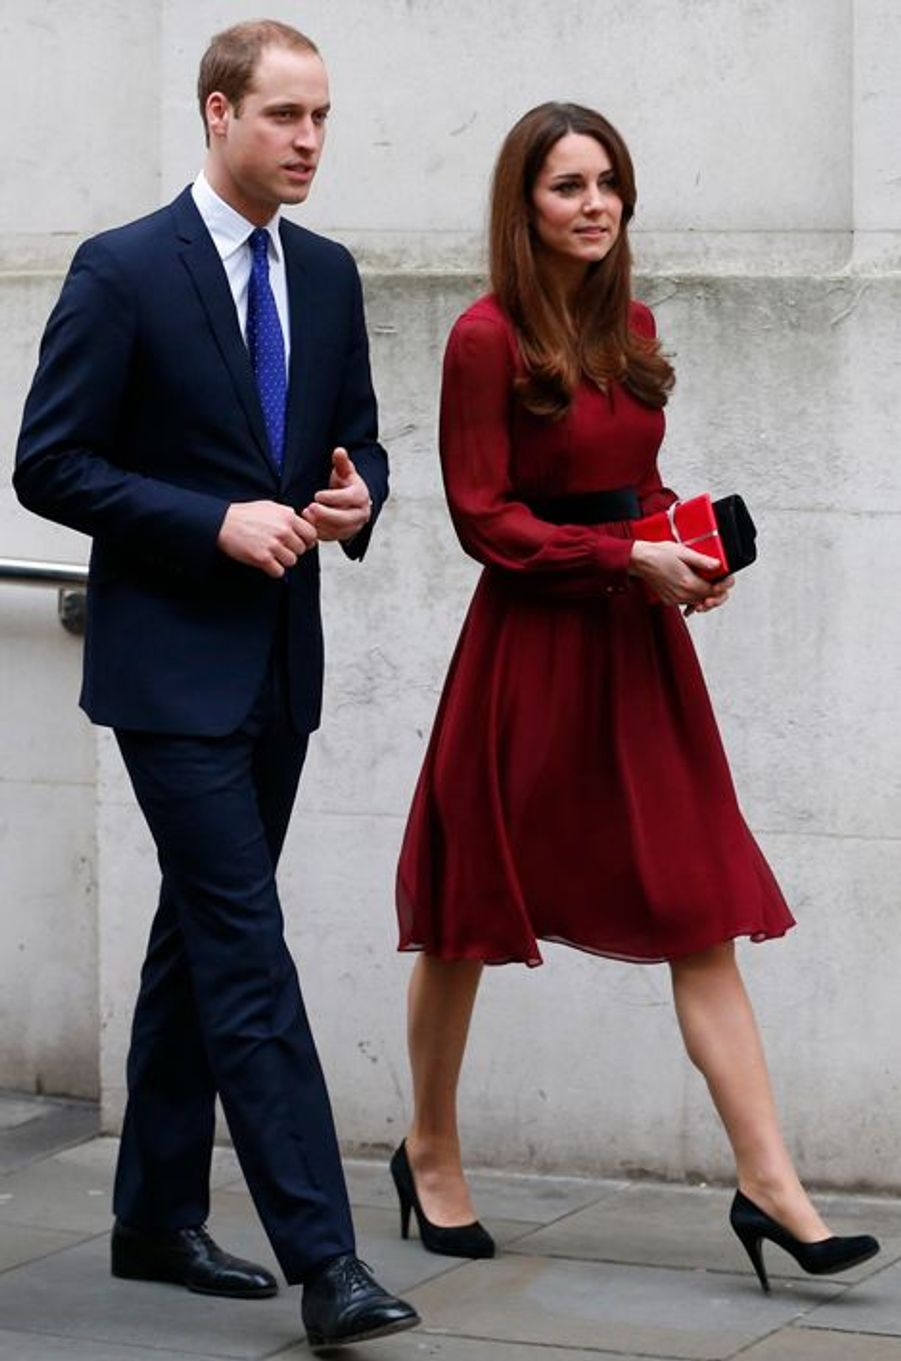 La duchesse de Cambridge Kate avec le prince William, le 11 janvier 2013